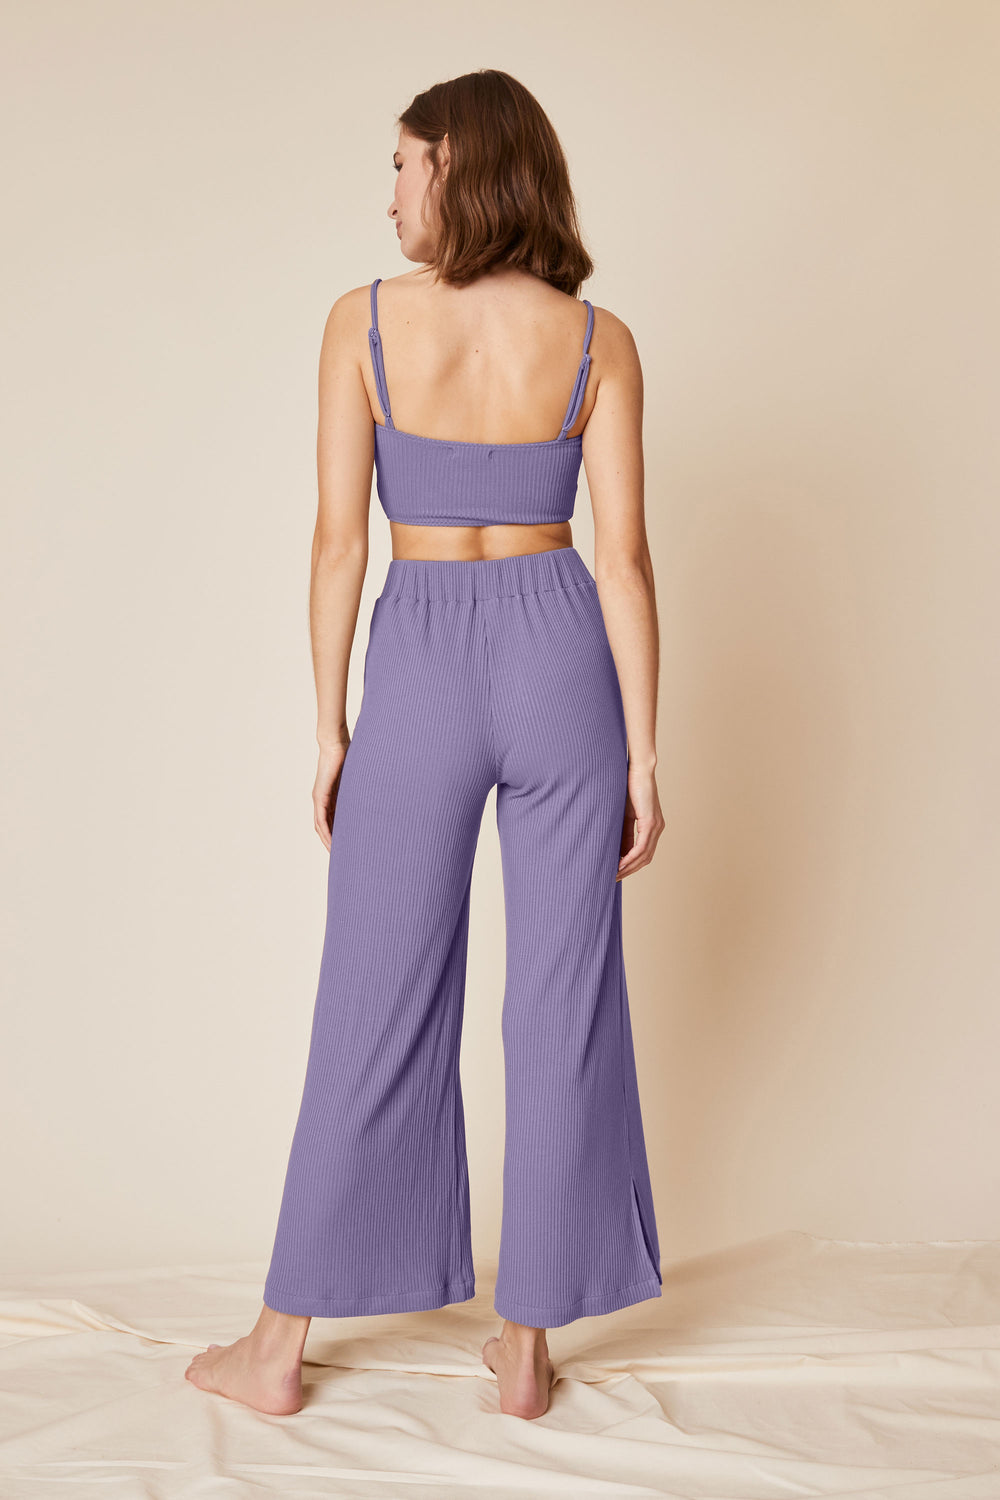 Norah Pant in Periwinkle Rib - Whimsy & Row